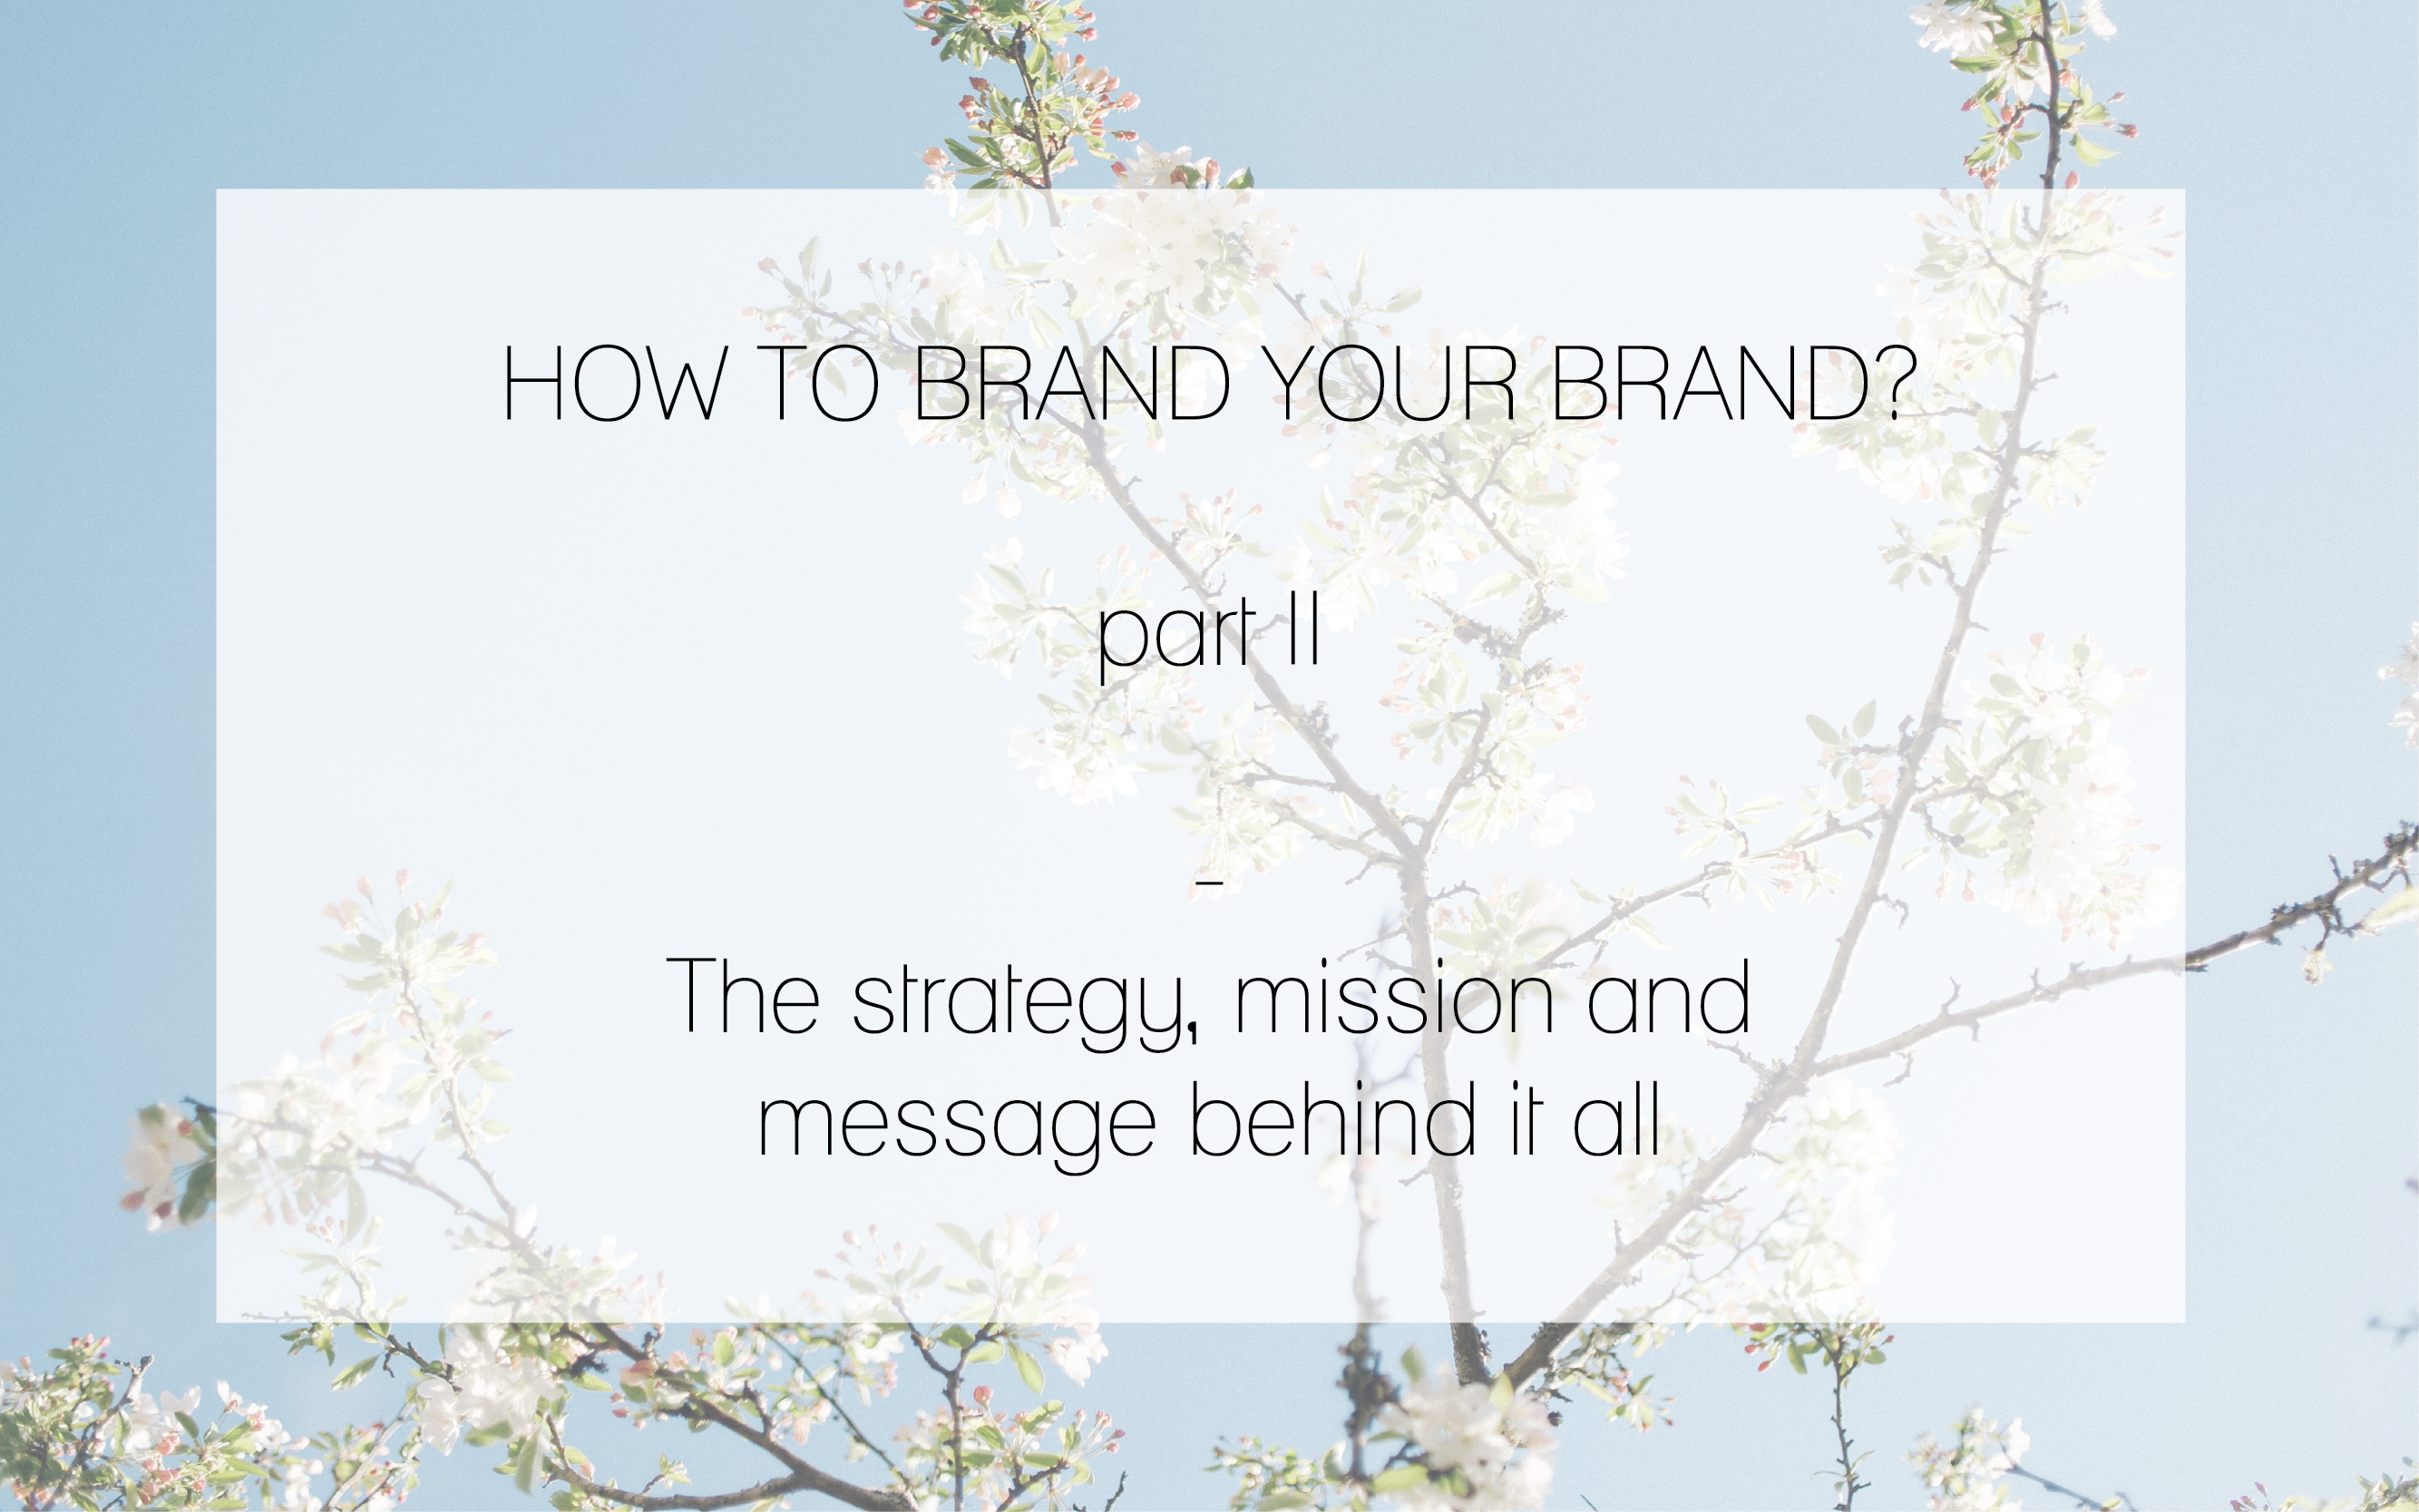 how to brand part II the strategy, mission and message